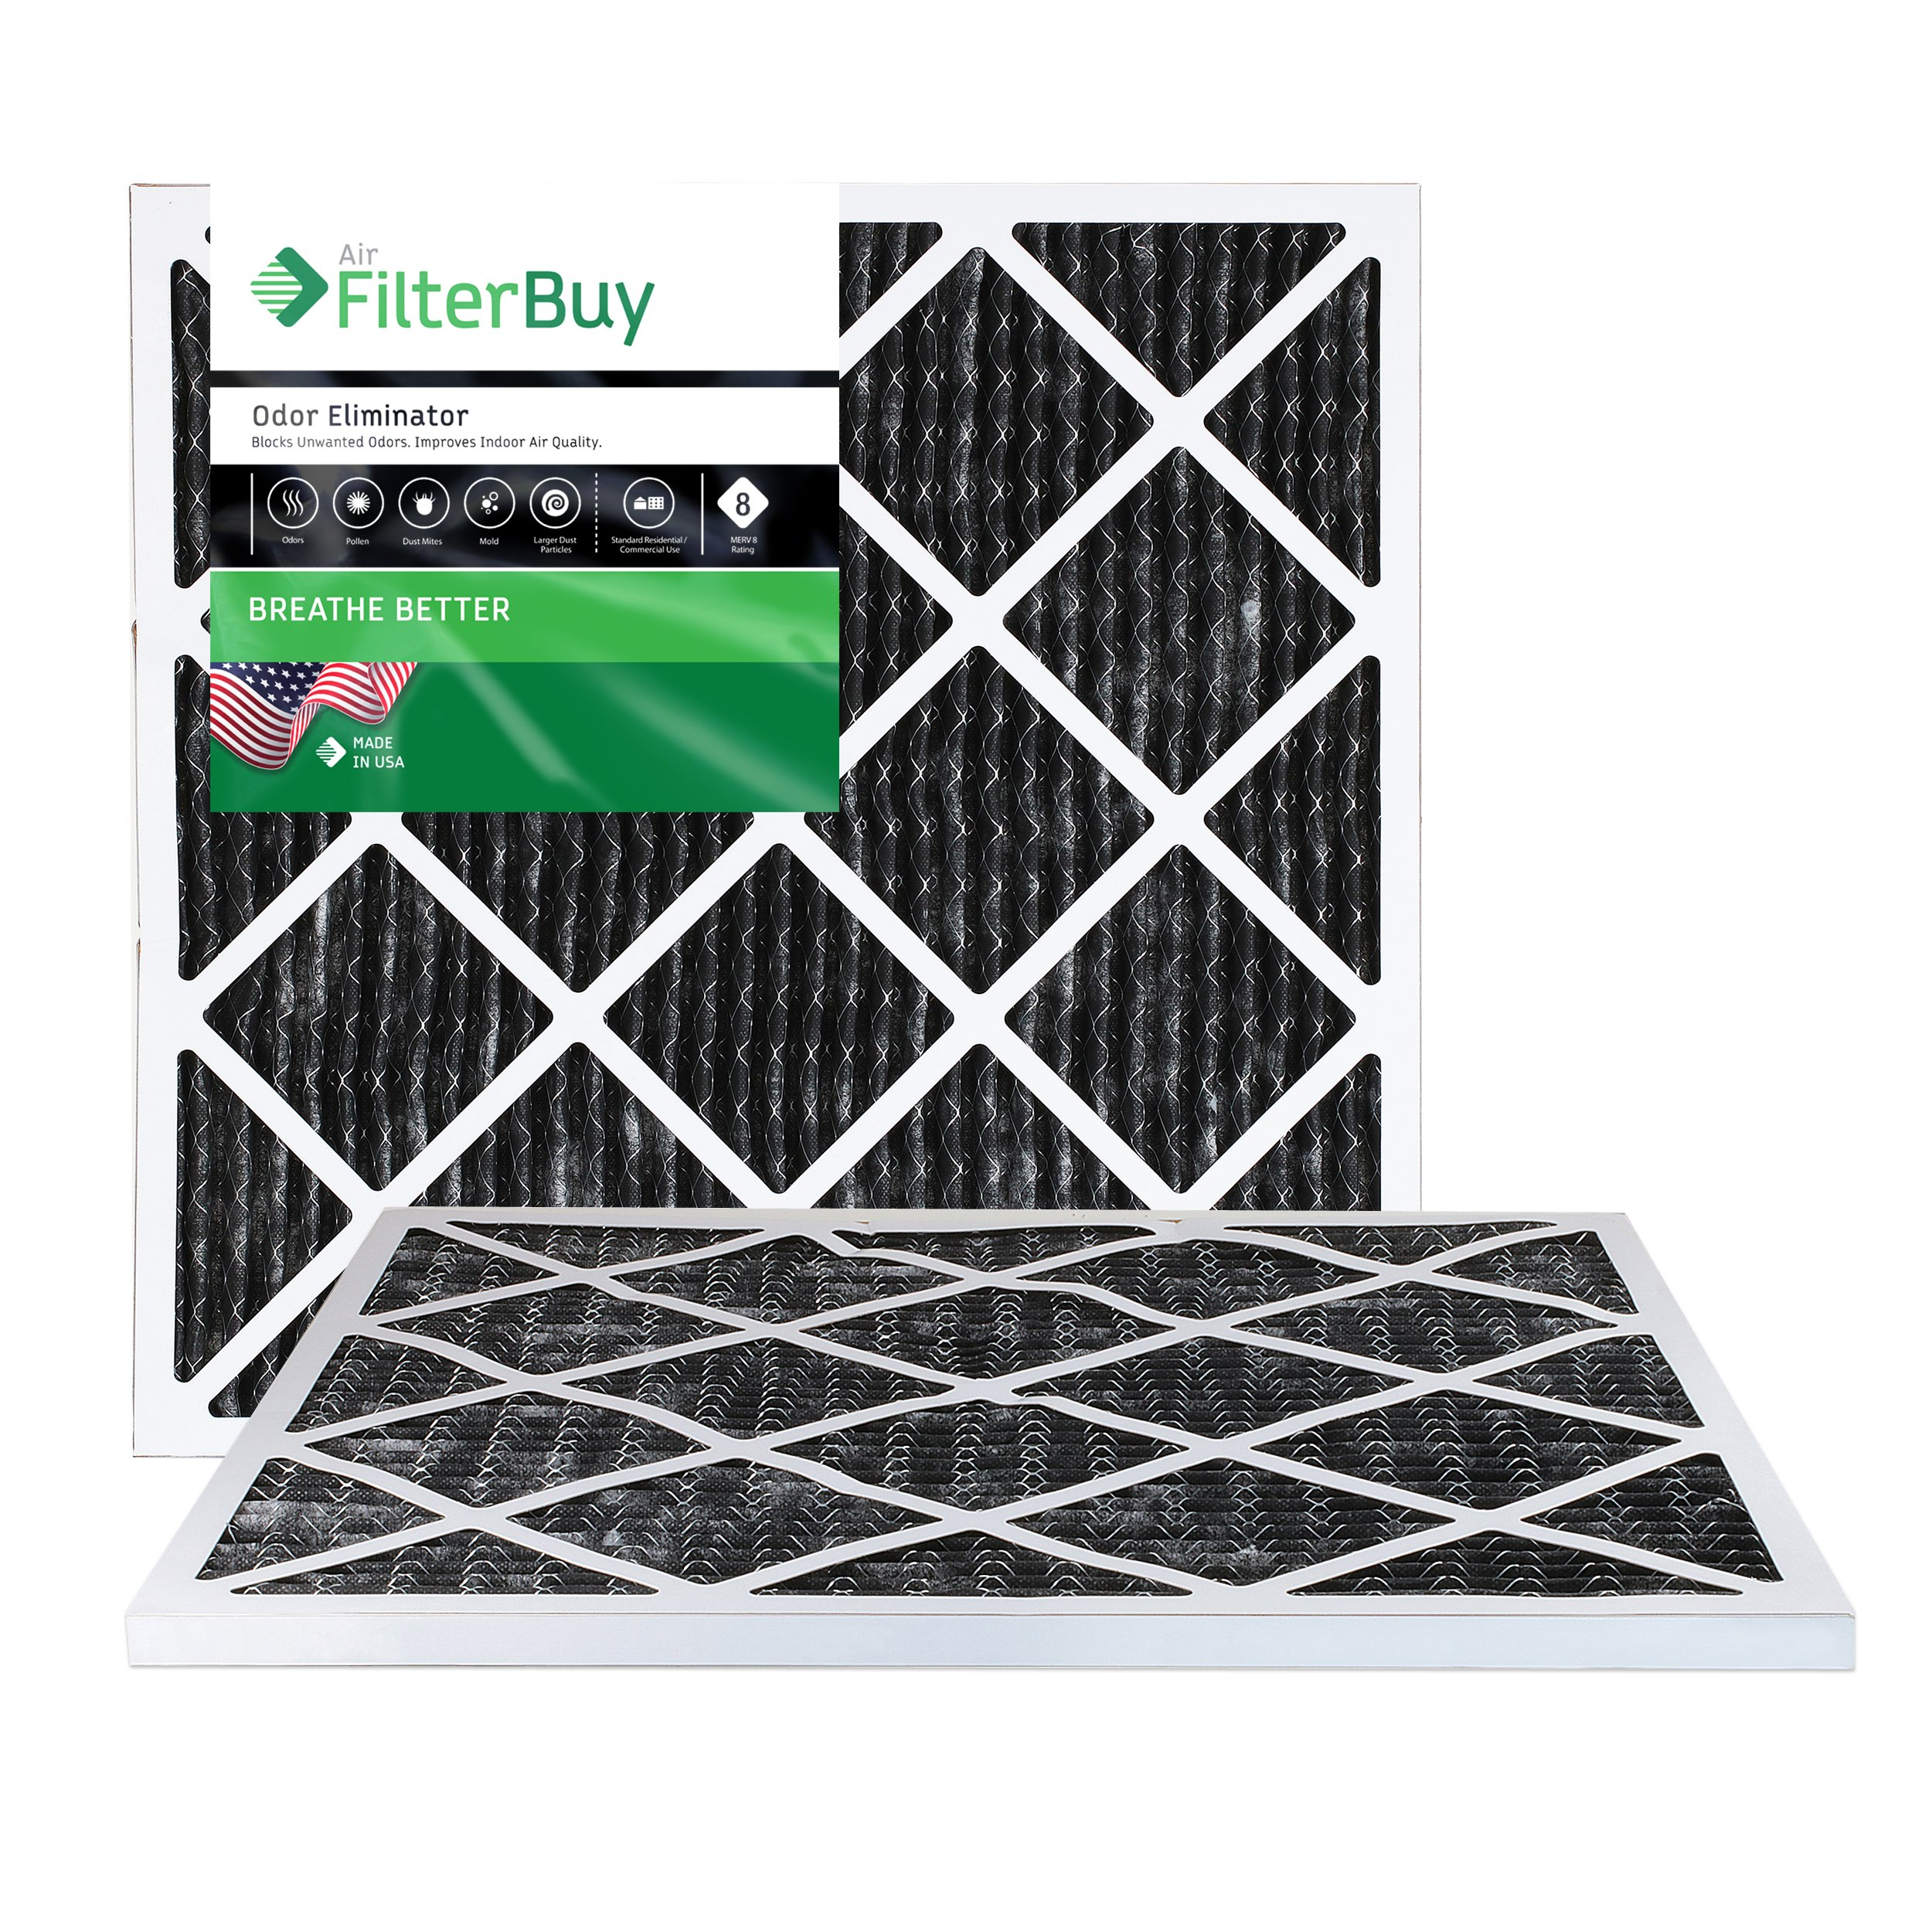 FilterBuy Allergen Odor Eliminator 20x20x1 MERV 8 Pleated AC Furnace Air Filter with Activated Carbon - Pack of 2-20x20x1